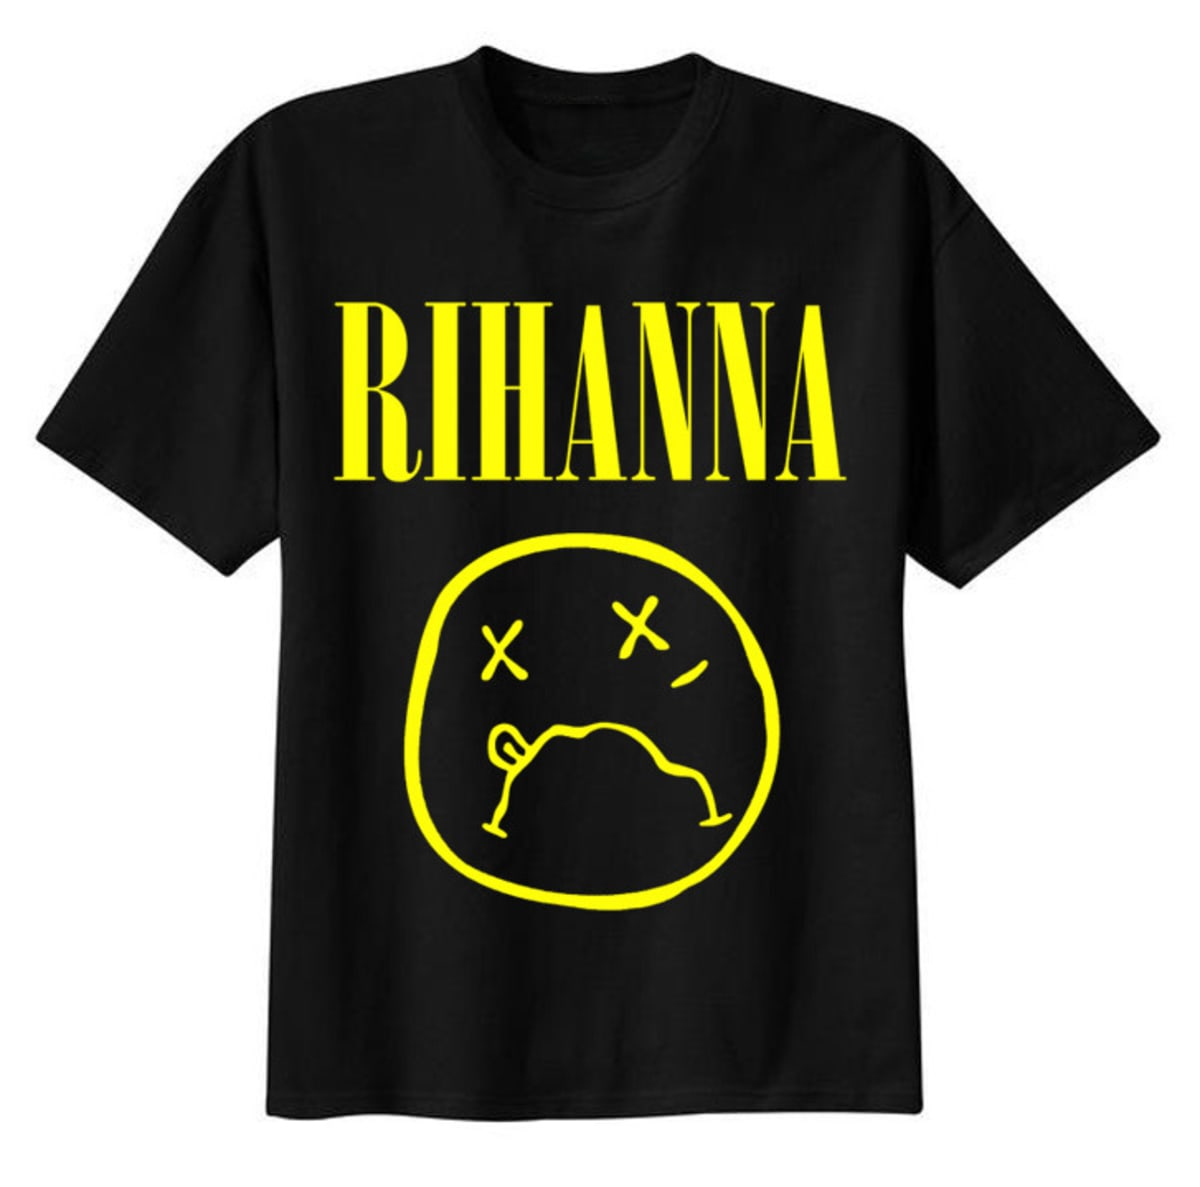 This t shirt depicts another unlikely rihanna collaboration complex gumiabroncs Images